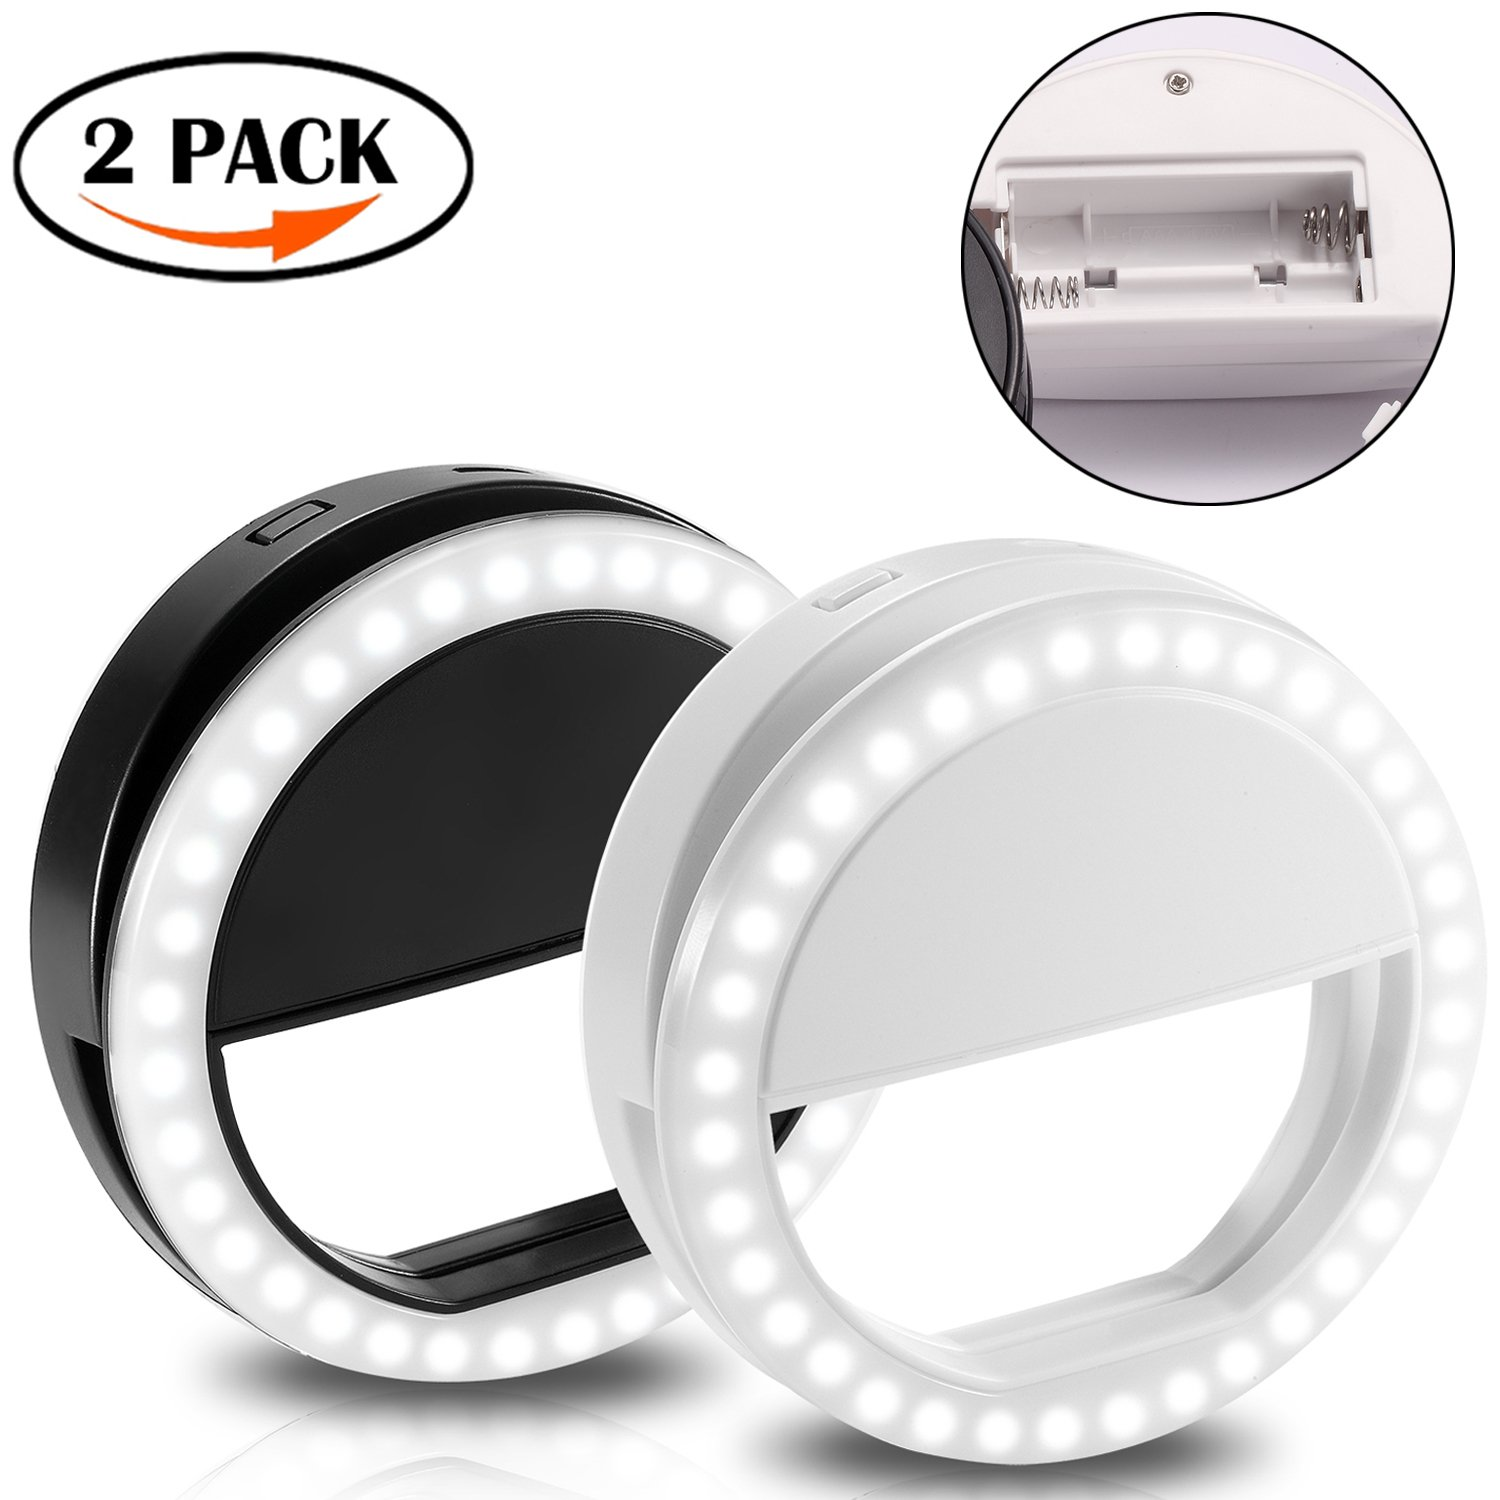 Selfie Ring Light for Camera Clip Style, 2 Pack Rechargeable 36 Chips LED Selfie Camera Light, for iPhone, ipad, Samsung Galaxy, Other Photography Smartphone, Black & White